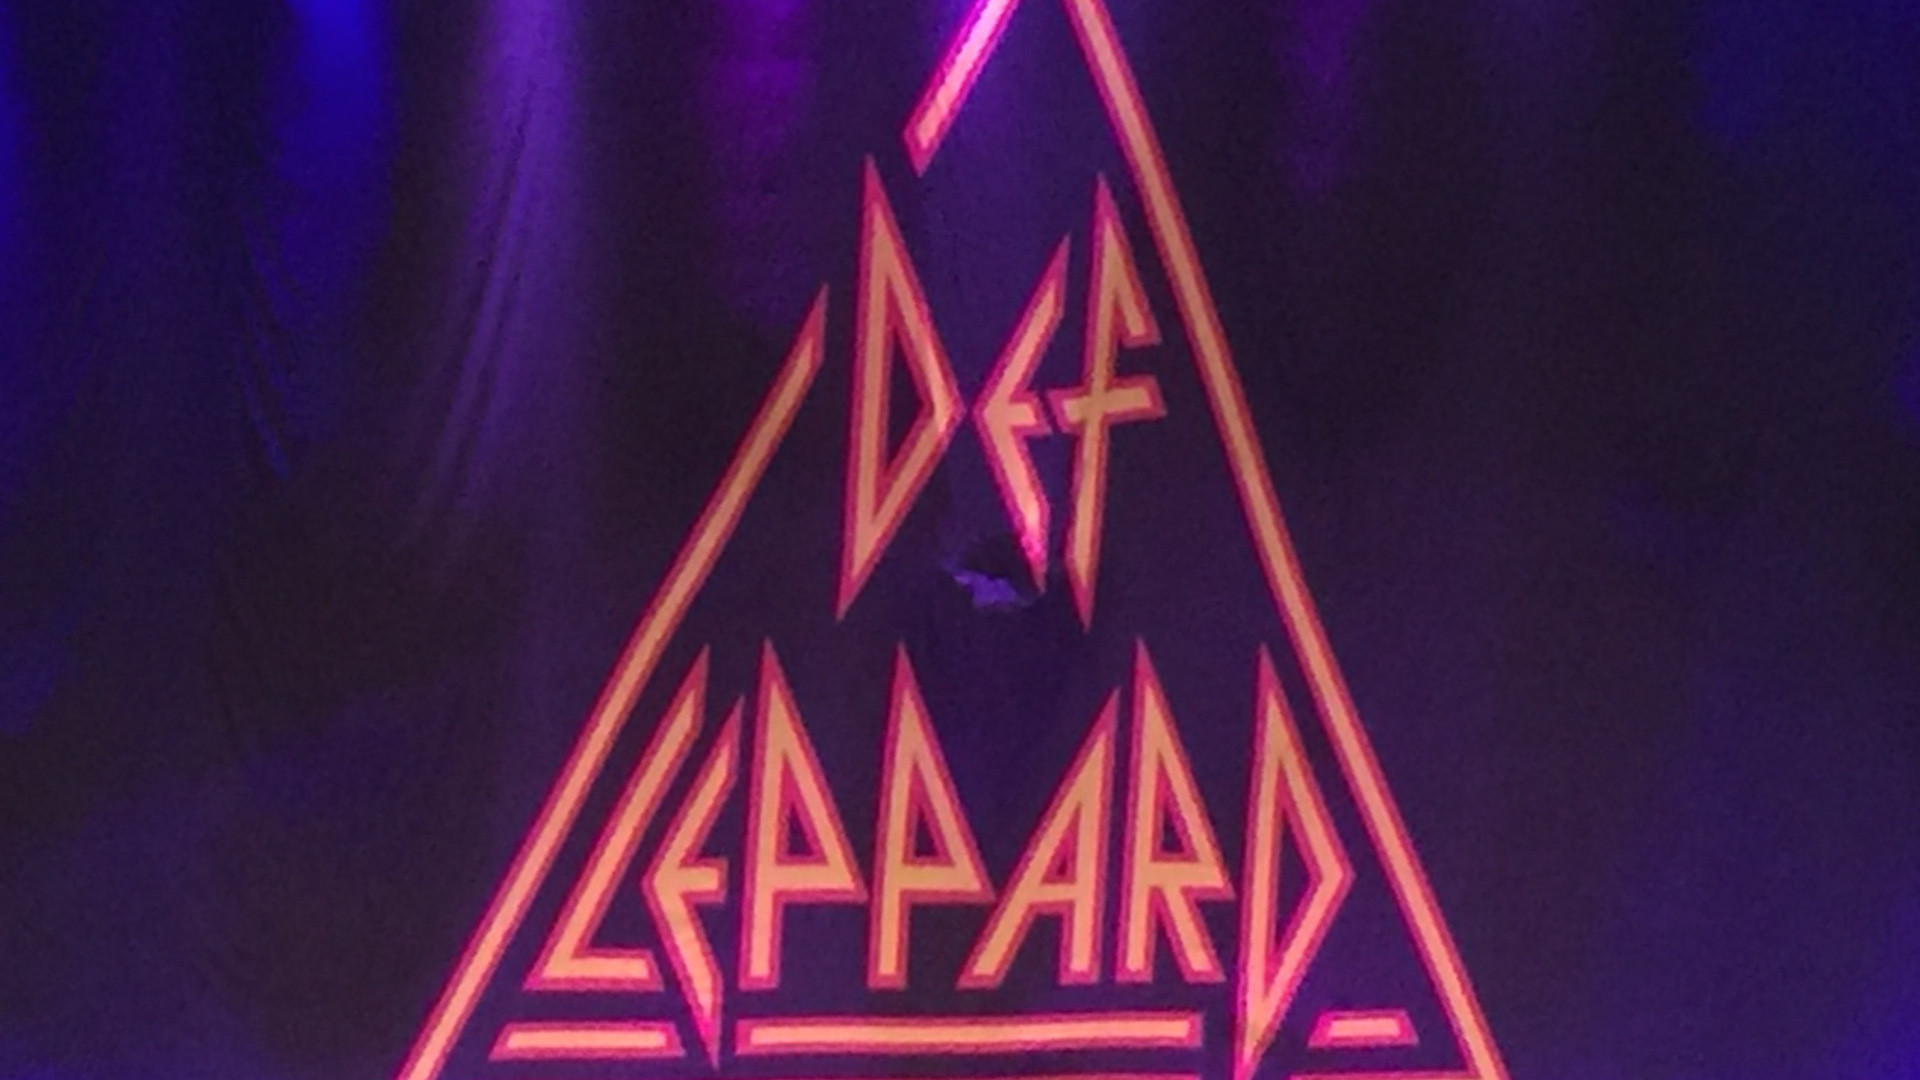 Res: 1920x1080, Rockin' with Def Leppard and Flashbacks from the 1980s